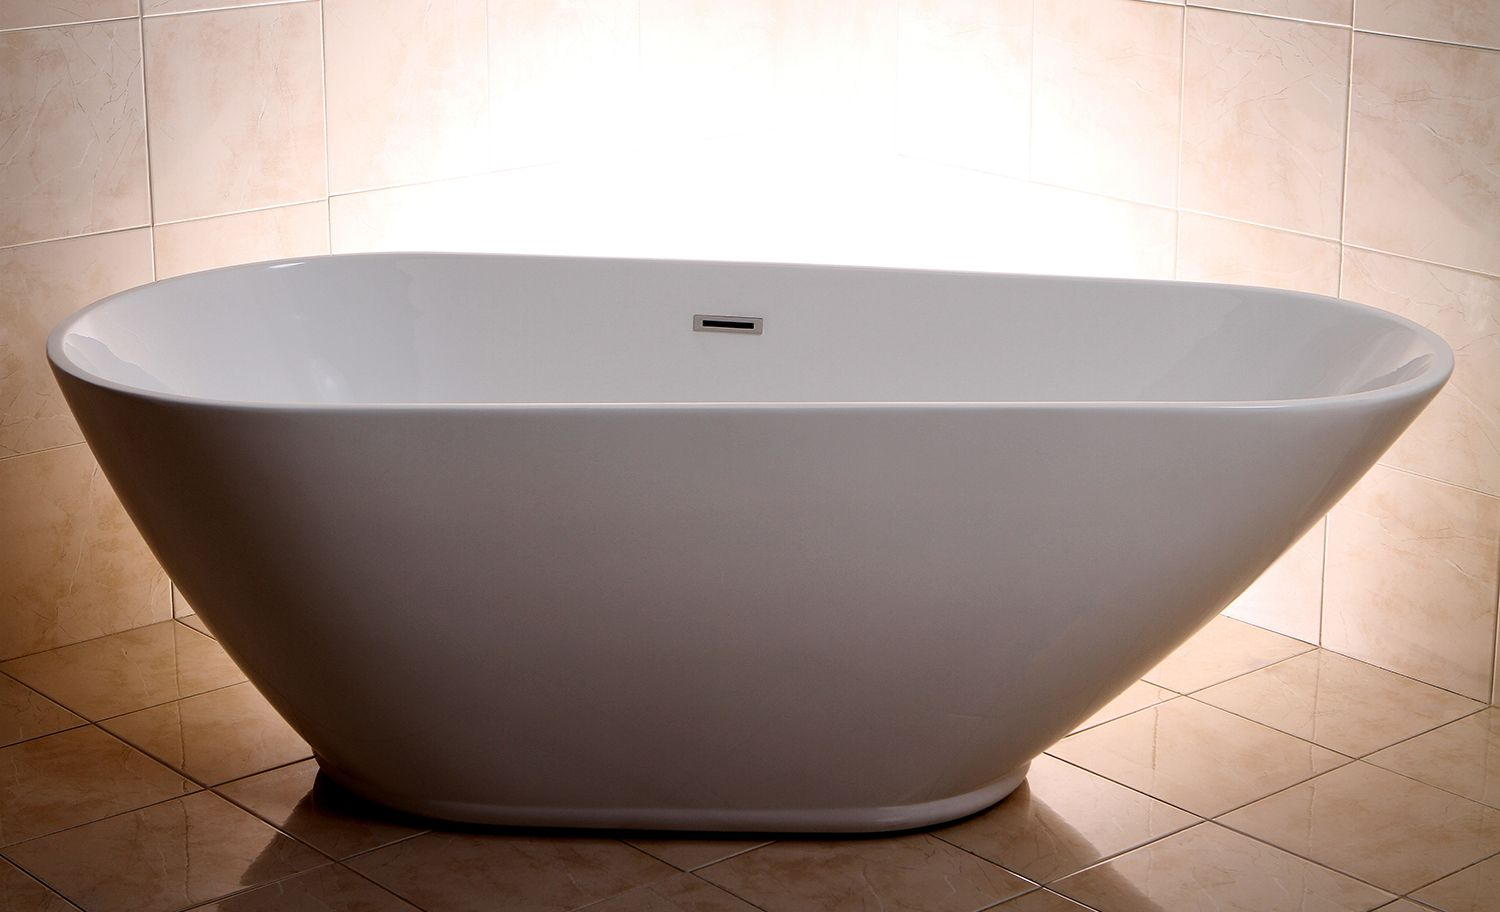 oval acrylic style shapes types ceramic bathtub